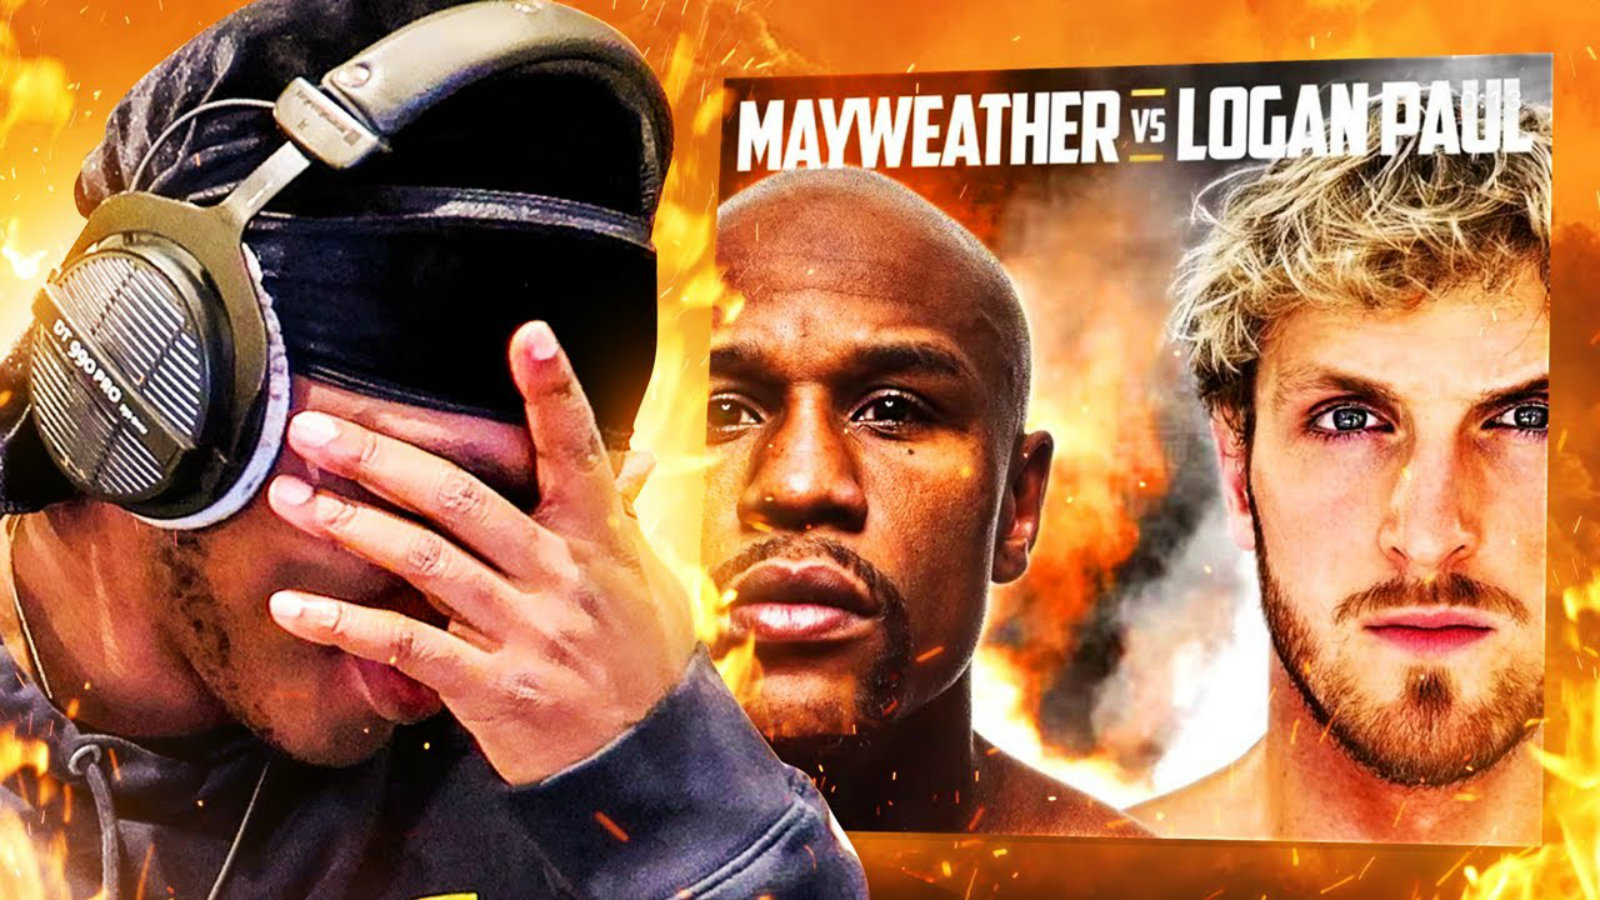 KSI on the Logan Paul Mayweather fight